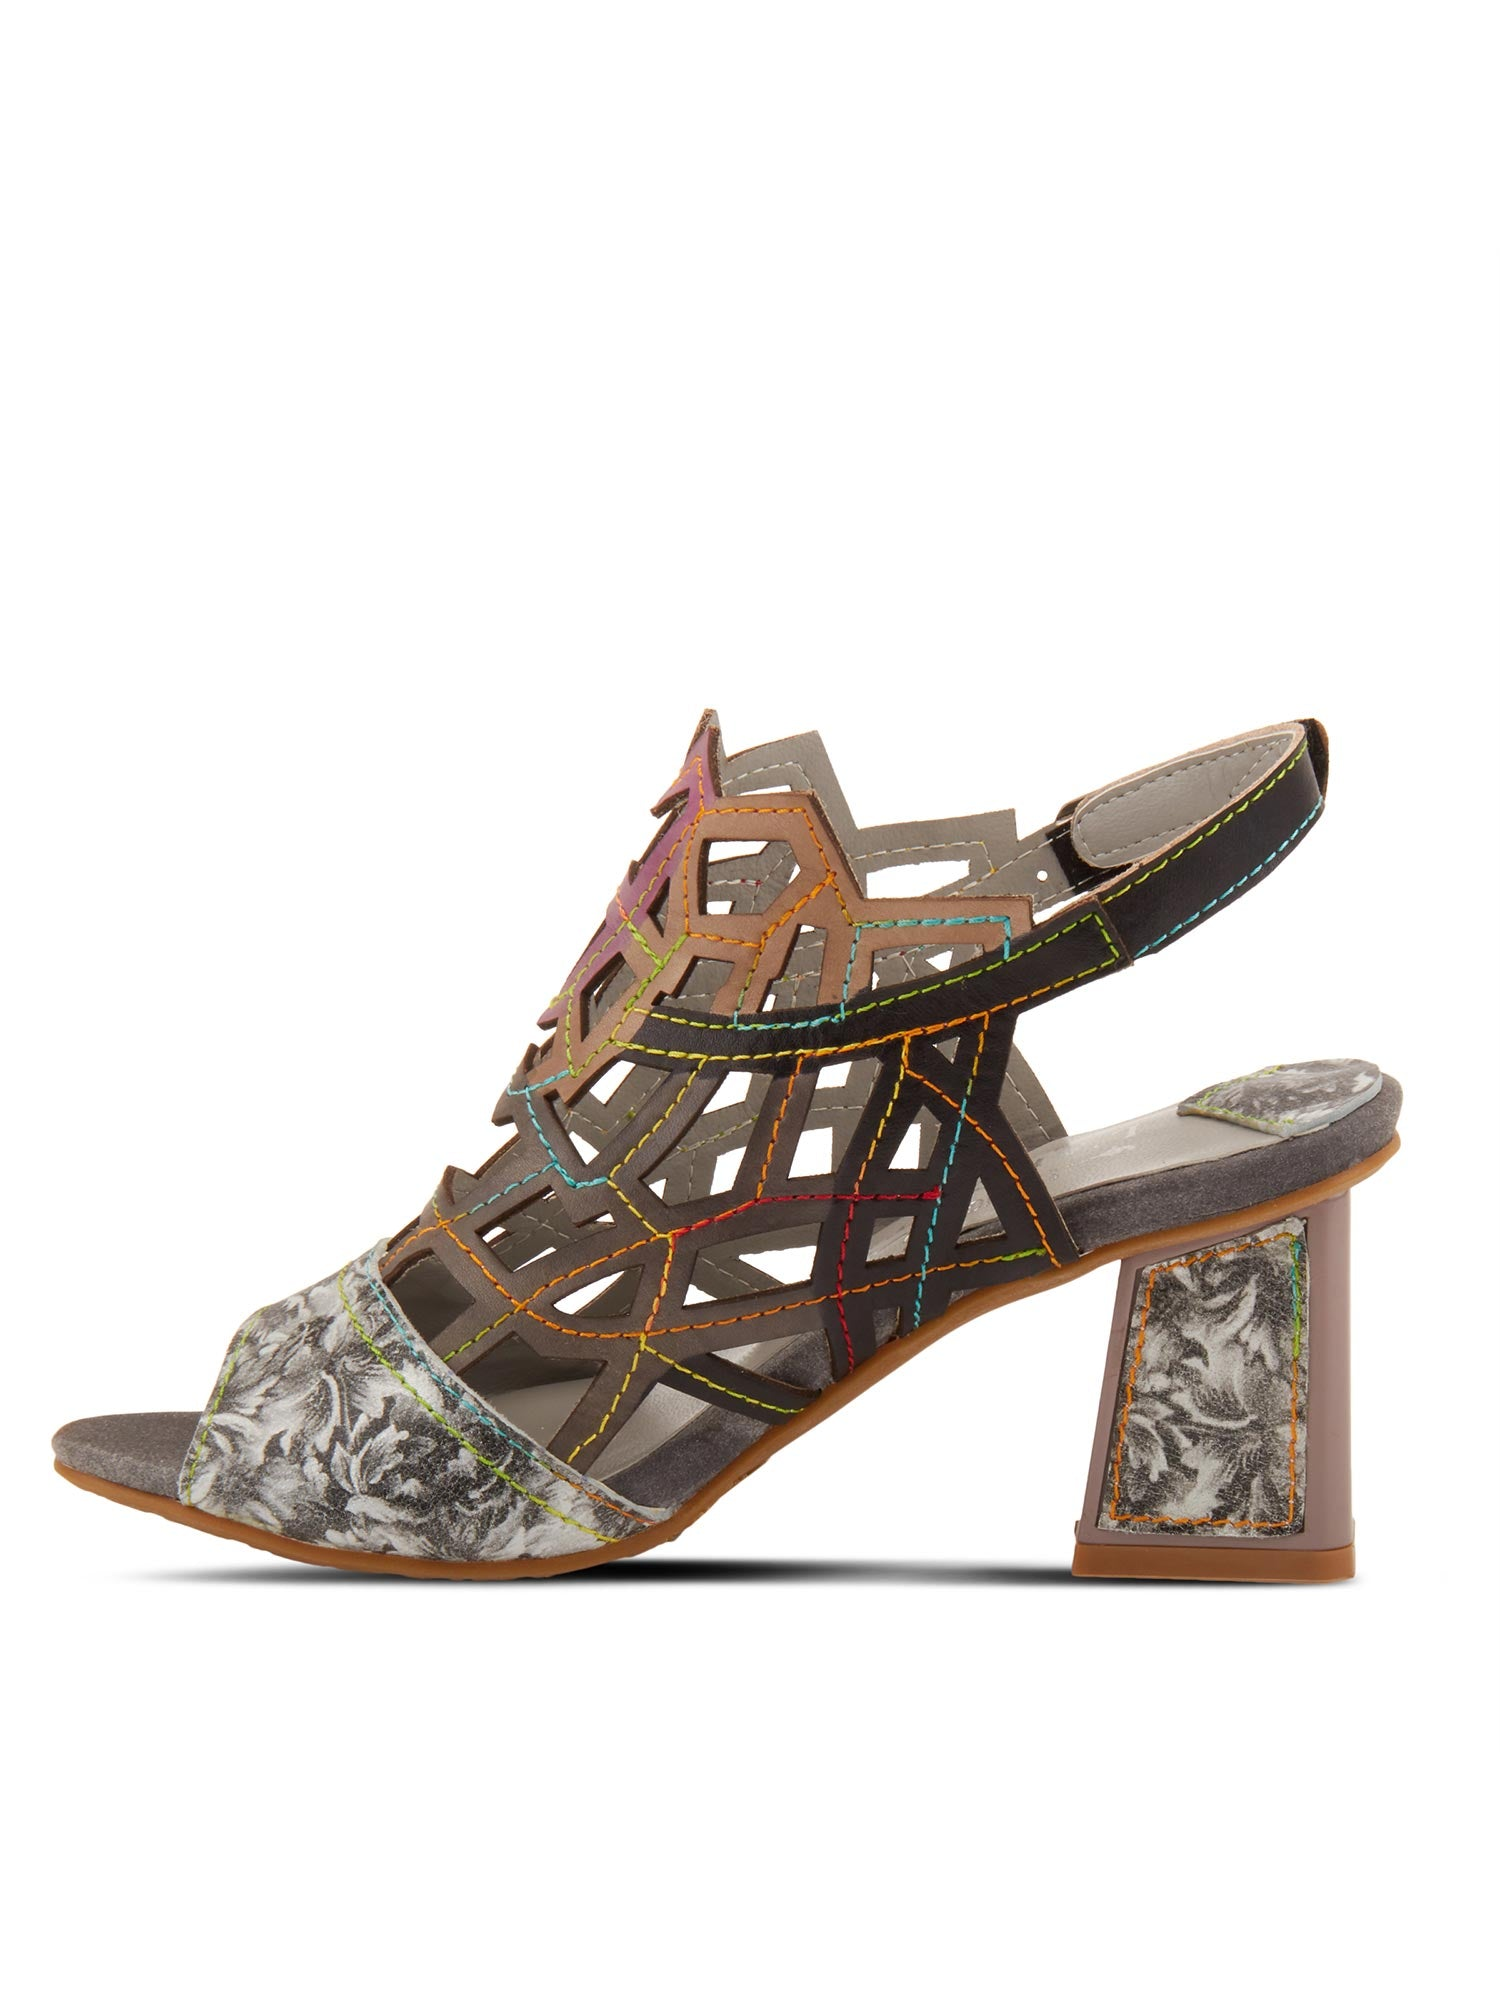 L'Artiste by Spring Step - Sanstar Laser Cut Sandals in Grey Multi